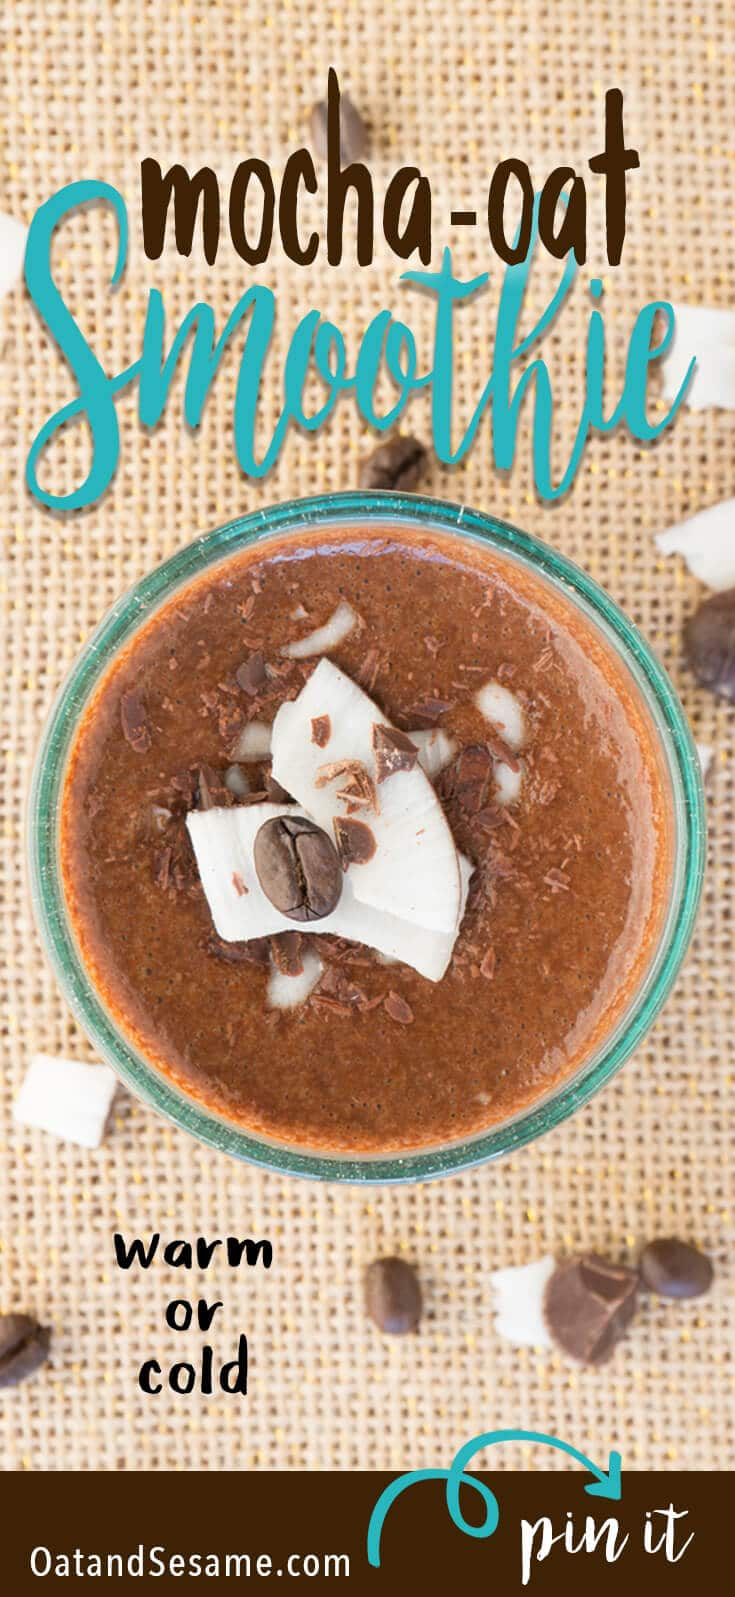 Coffee + Breakfast combined! Make this Creamy Mocha-Oat Smoothie for the best of a chocolate mocha plus your morning oats in one! Drink it warm or cold! | BREAKFAST | OATS | COFFEE | SMOOTHIE | Recipe at OatandSesame.com